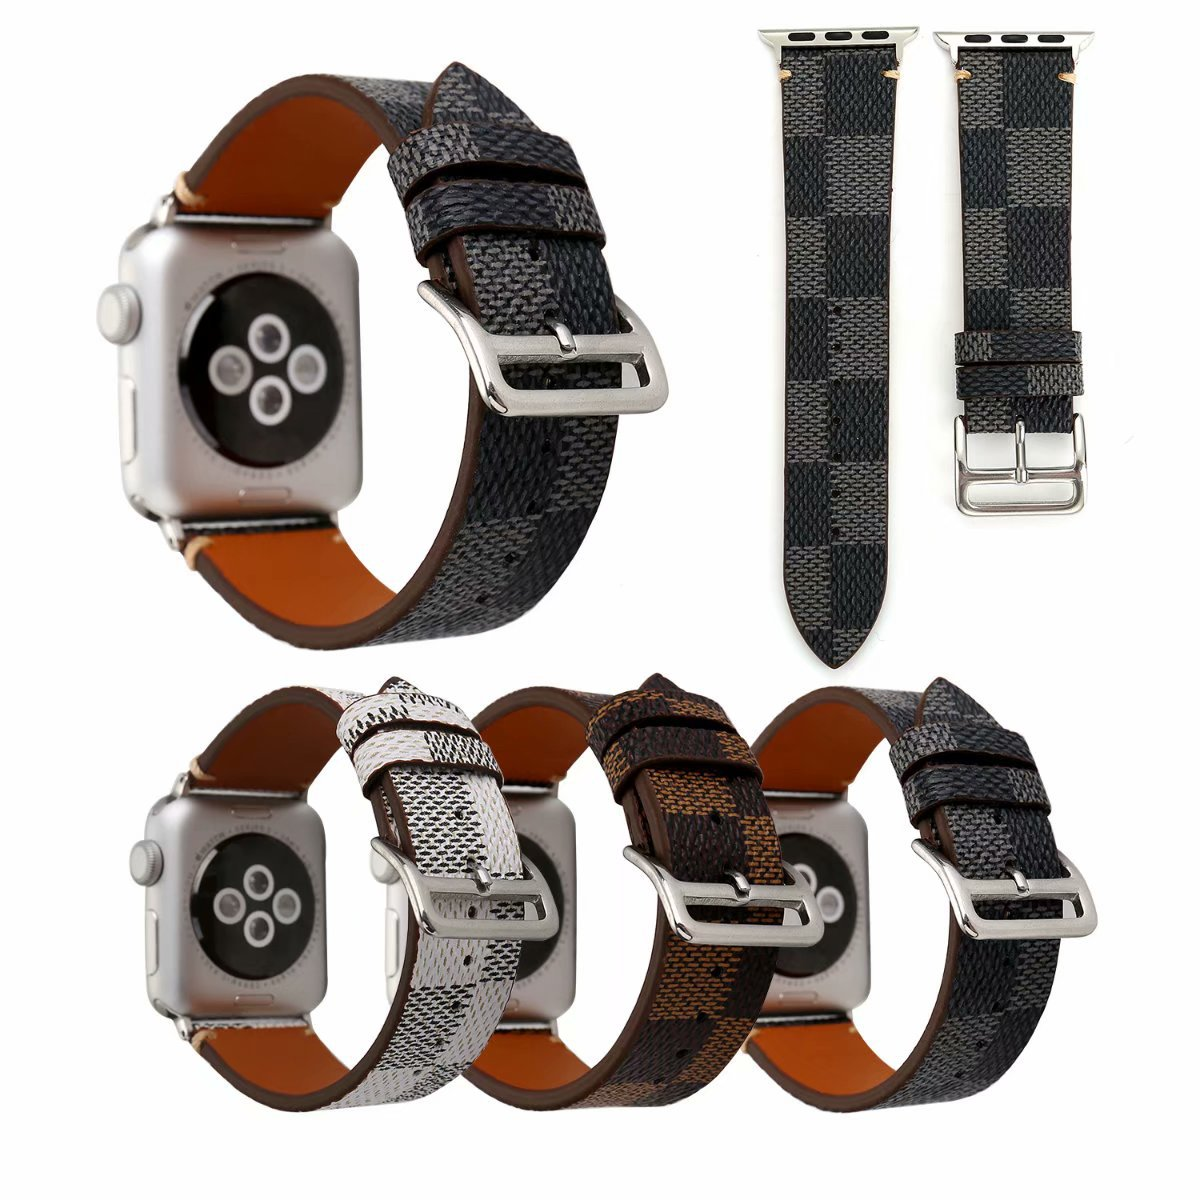 Applicable APPLE Watch Leather Watch Strap Classic Pattern Apple Watch Strap IWatch Square Lattice Wrist Strap